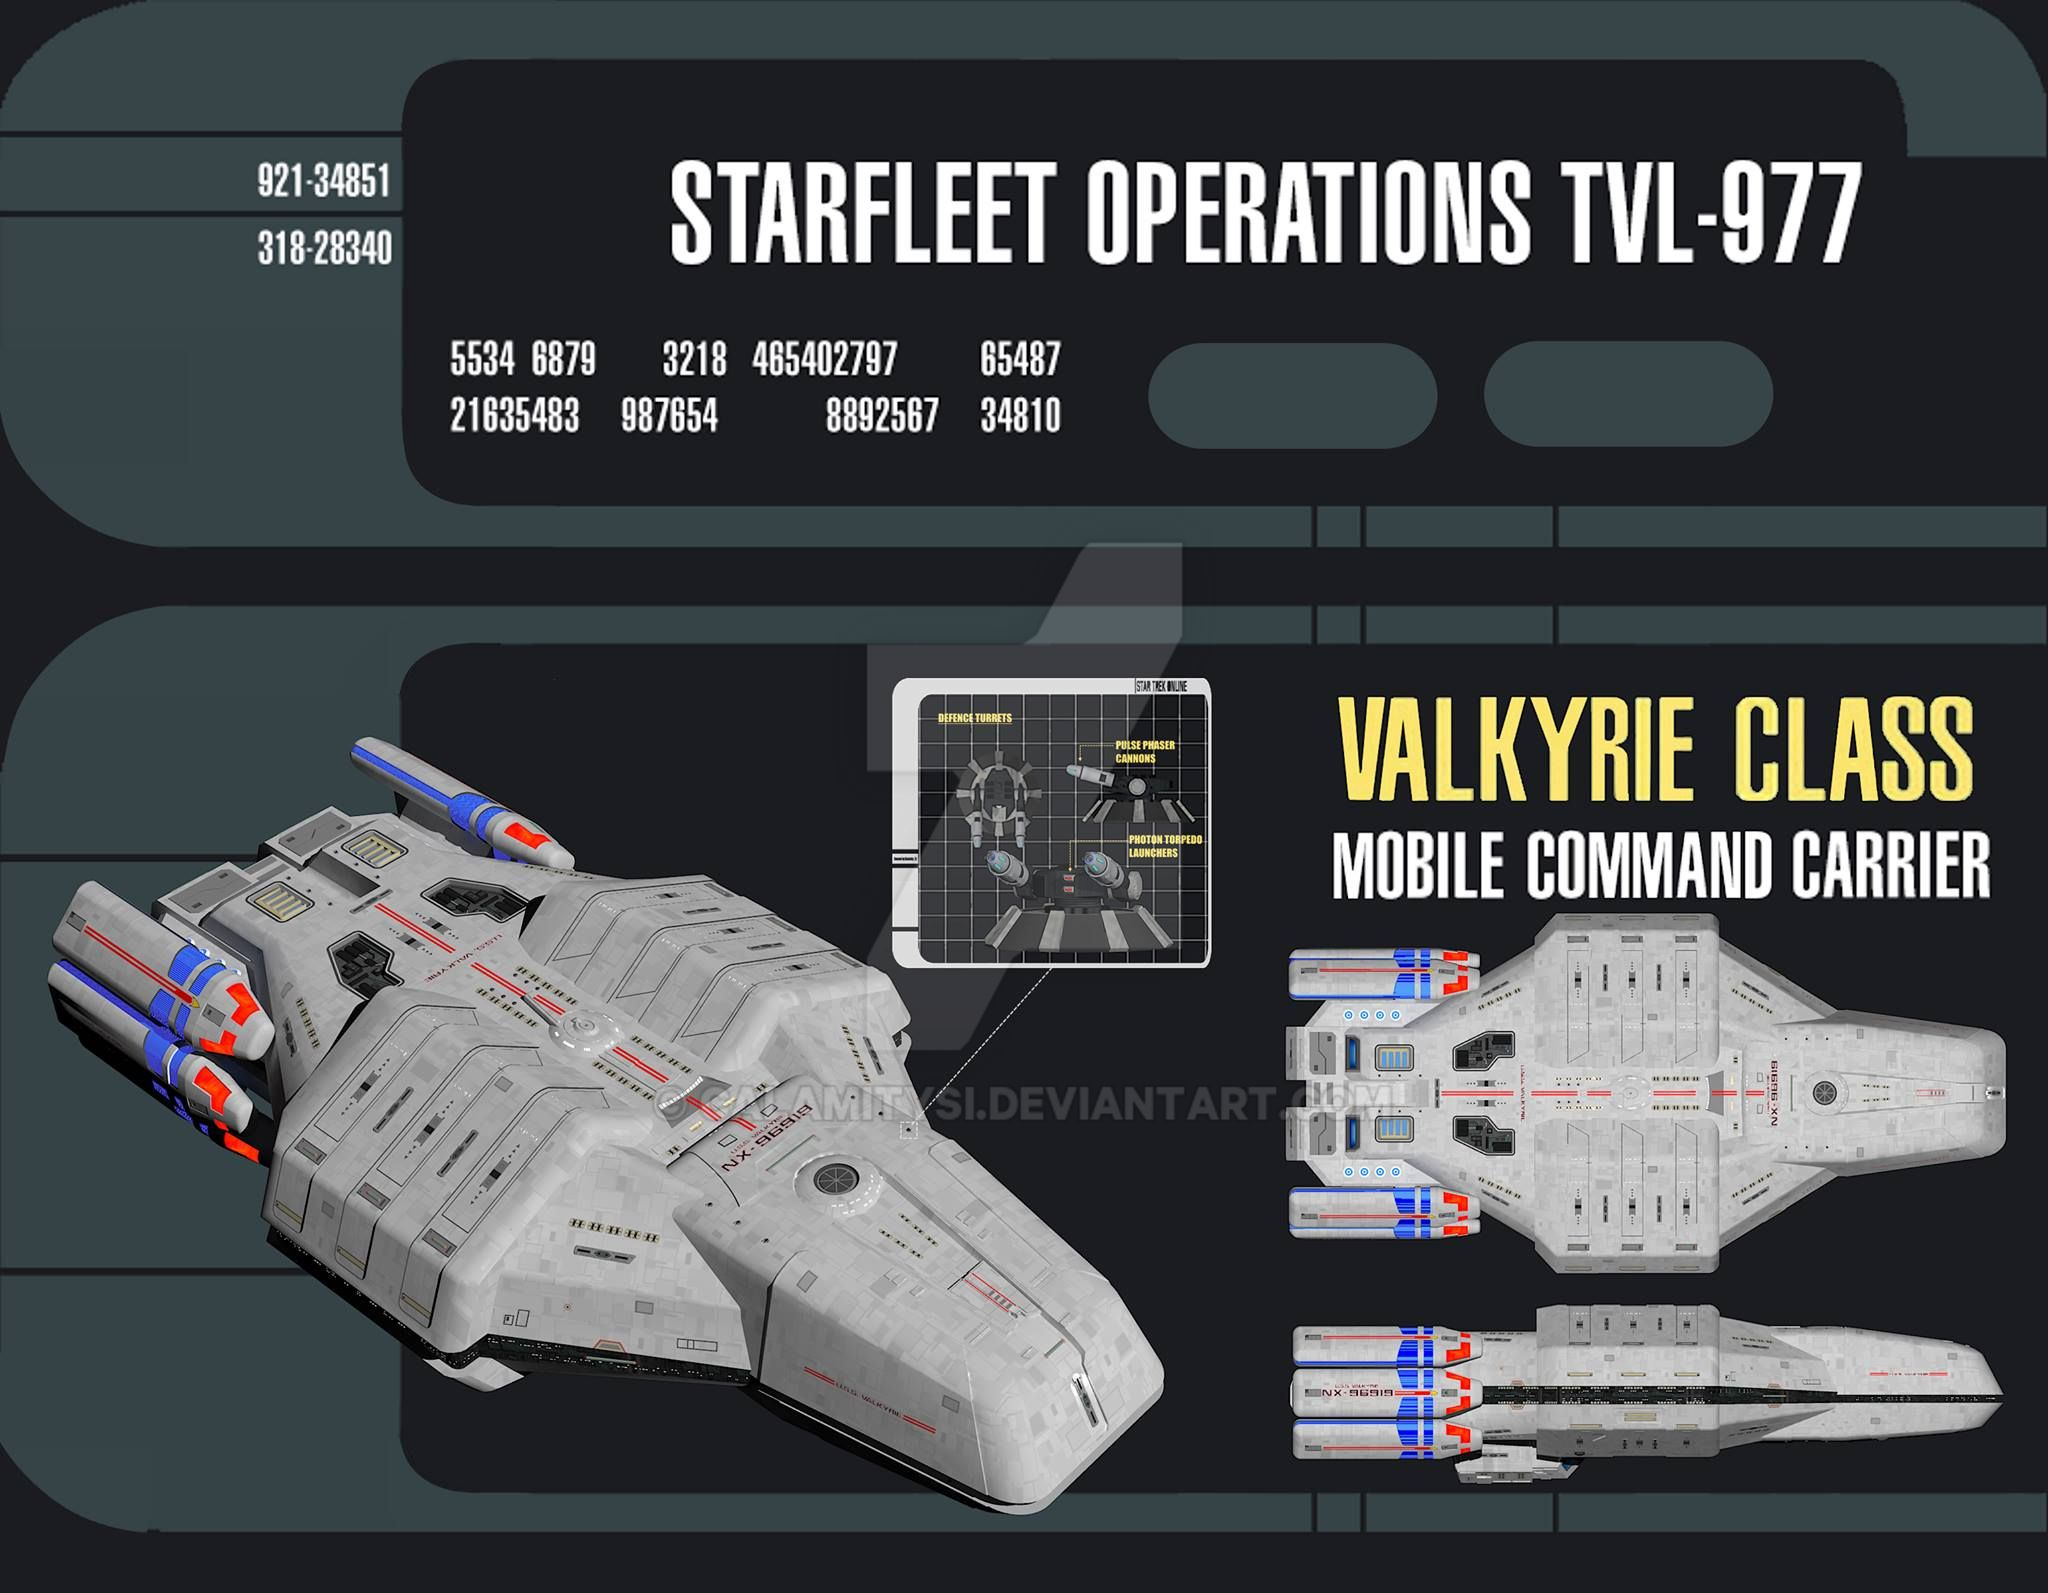 Federation Carrier U.S.S. Valkyrie defense turrets by calamitySi